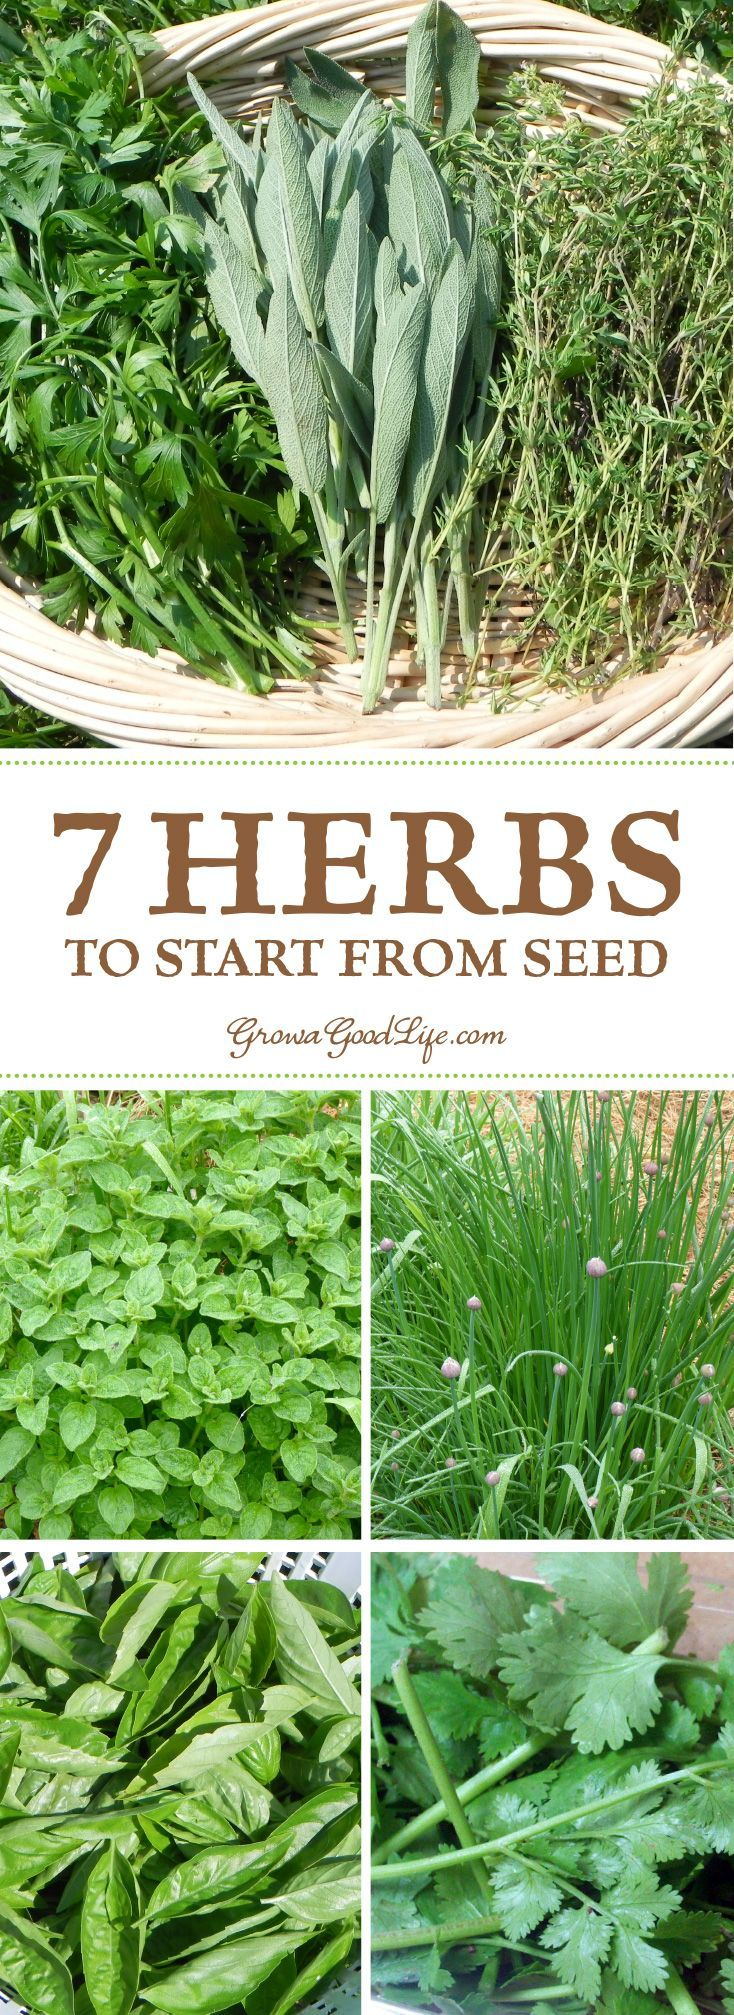 Growing Herbs: 7 Herbs to Start from Seed #herbsgarden